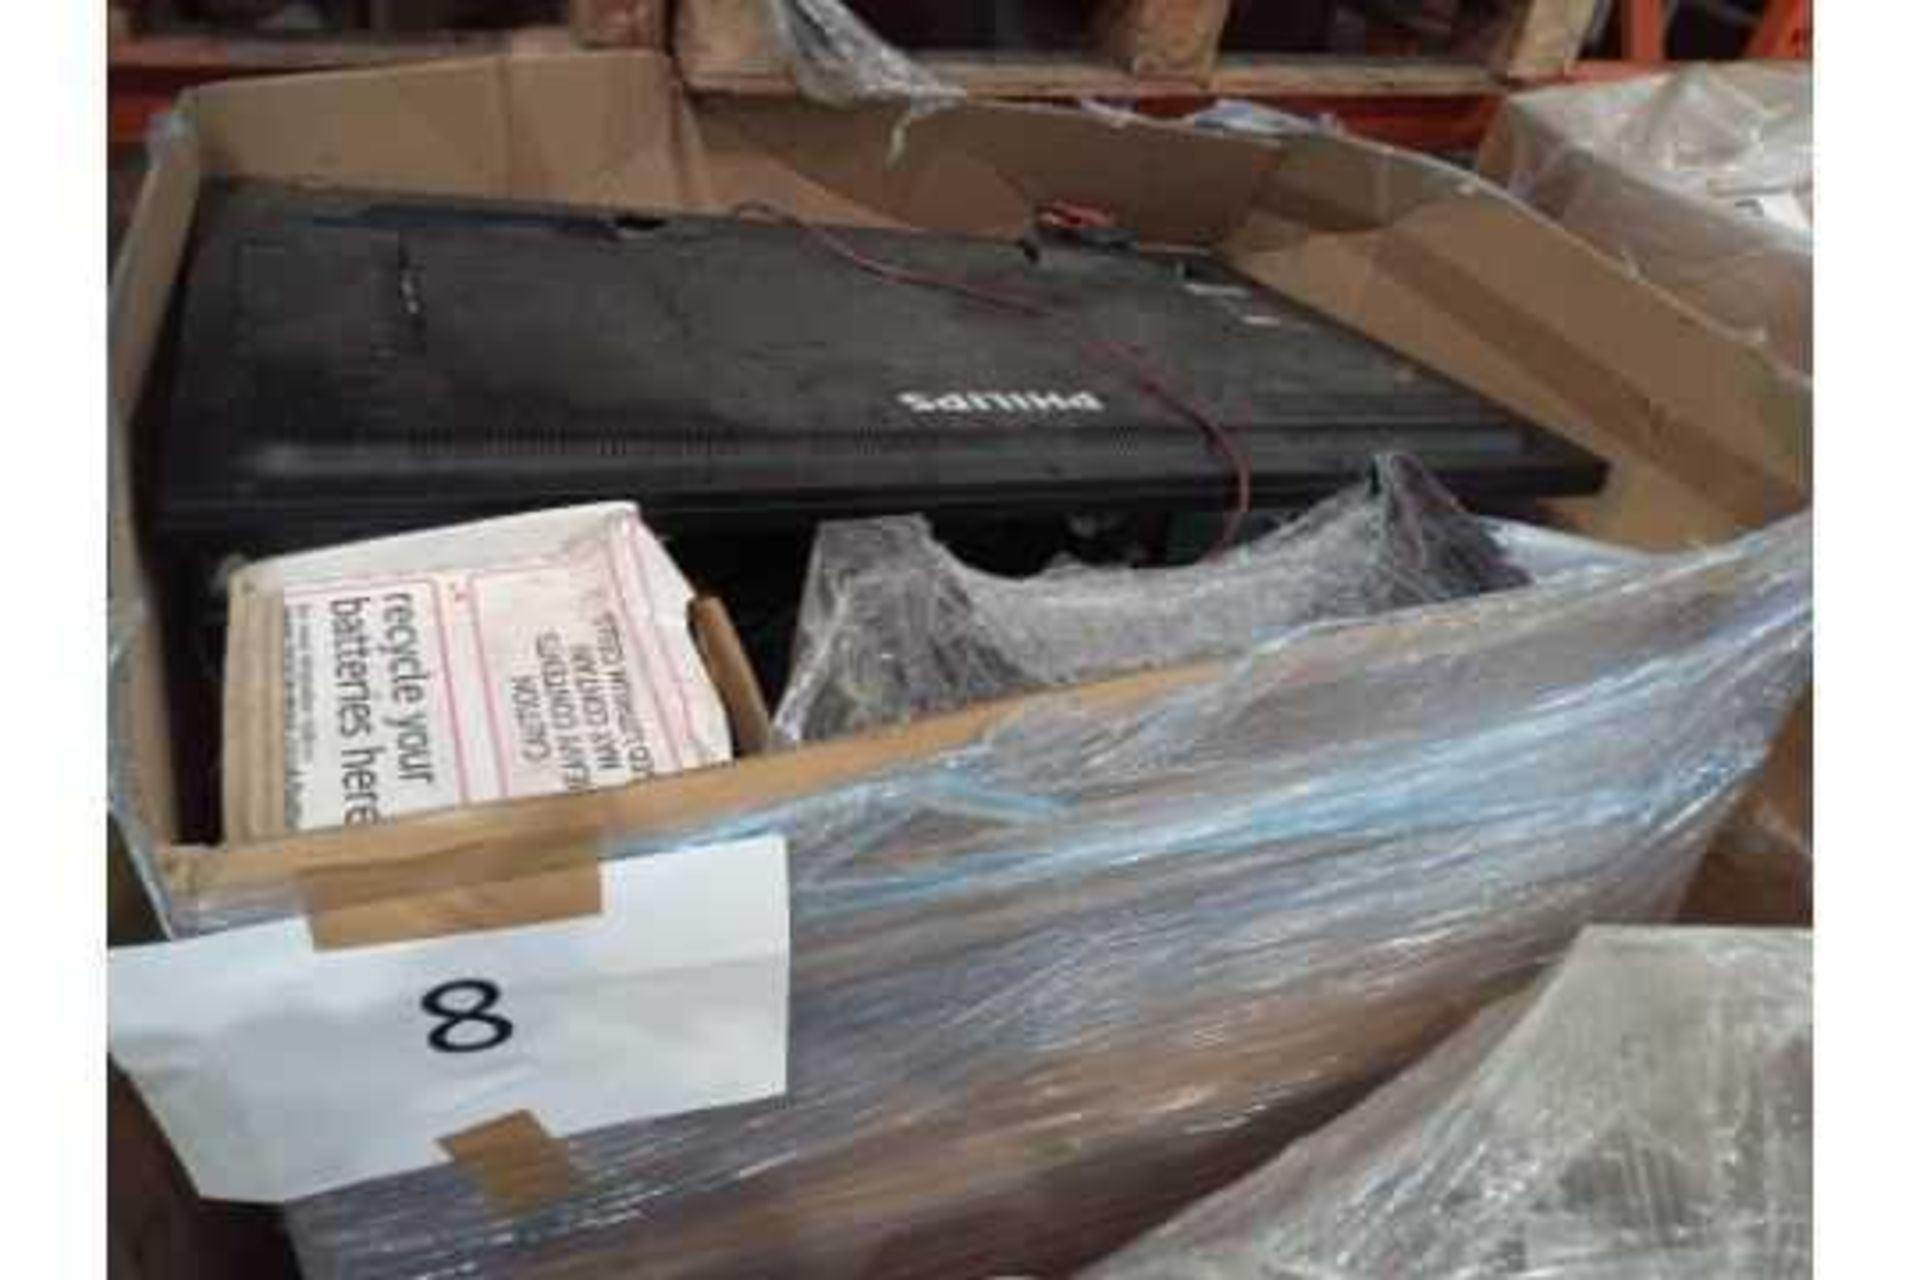 Pallet To Contain A Large Assortment Of Mixed Stock To Include Philips Tv, Batteries, Dell Screens, - Image 2 of 2